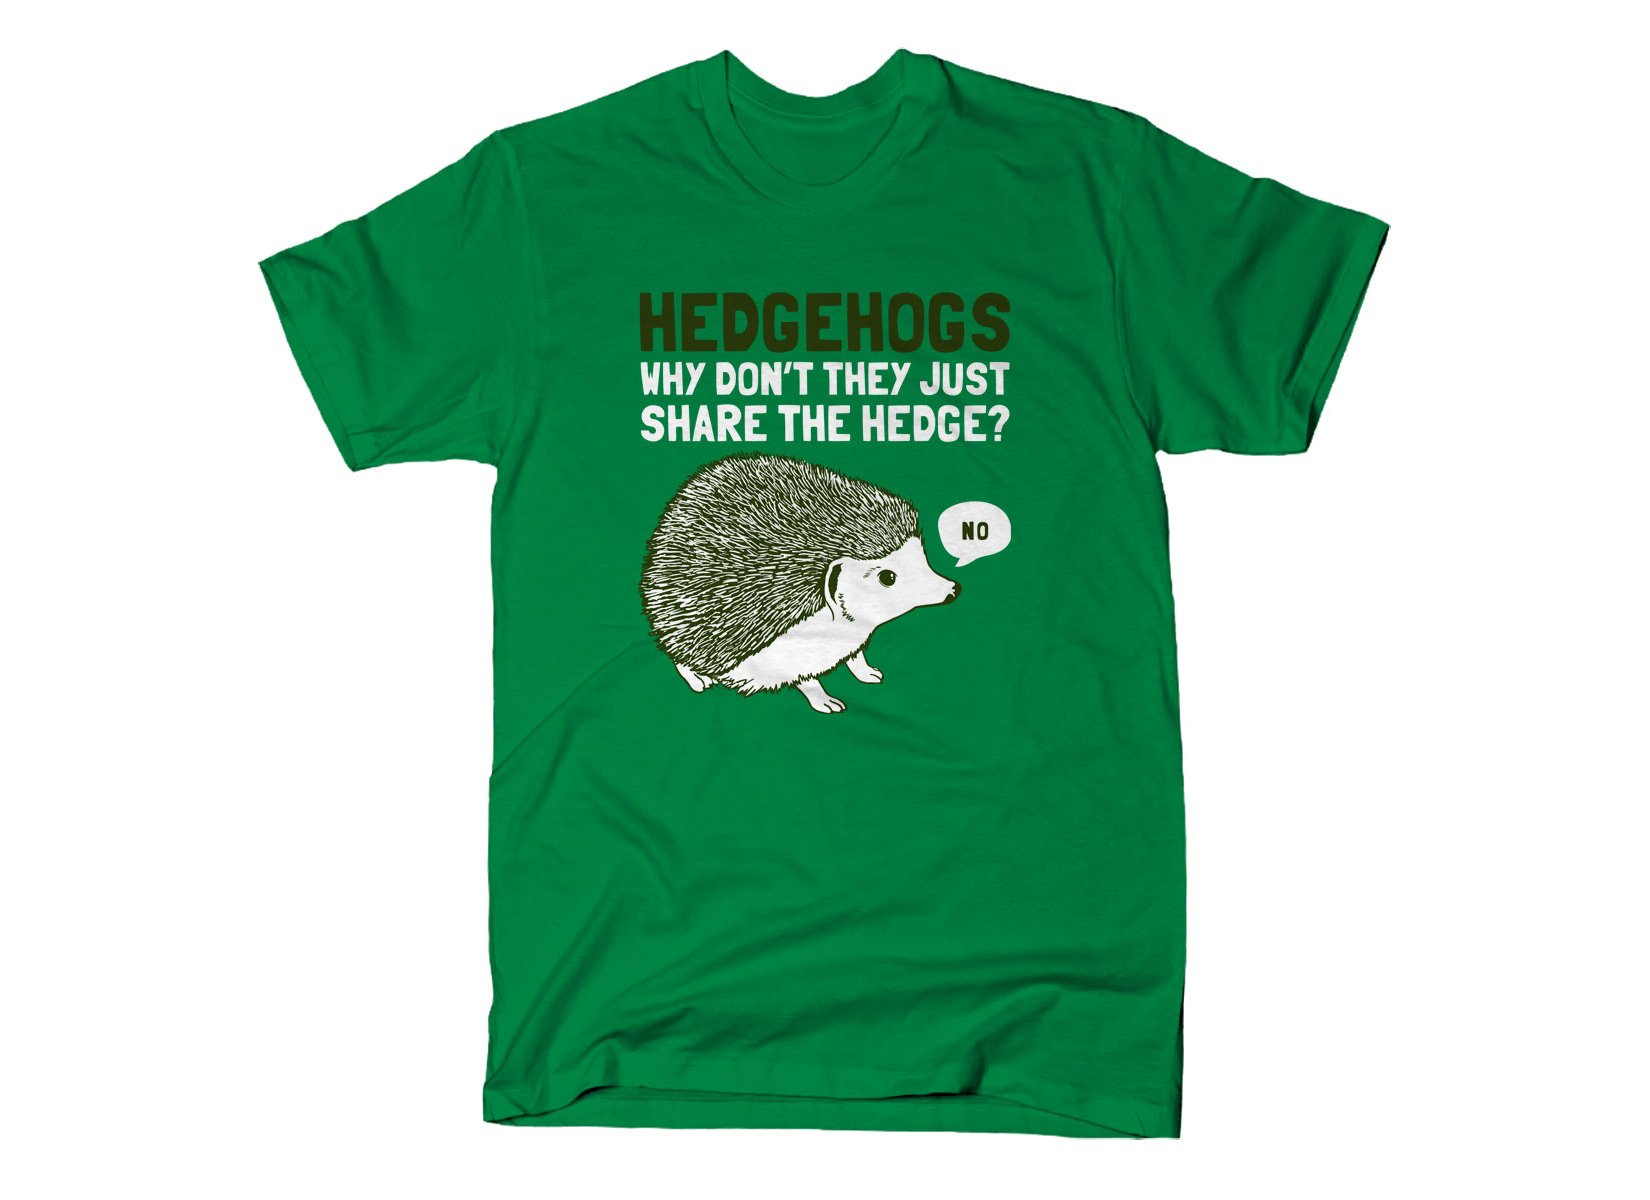 Hedgehogs Can't Share on Mens T-Shirt